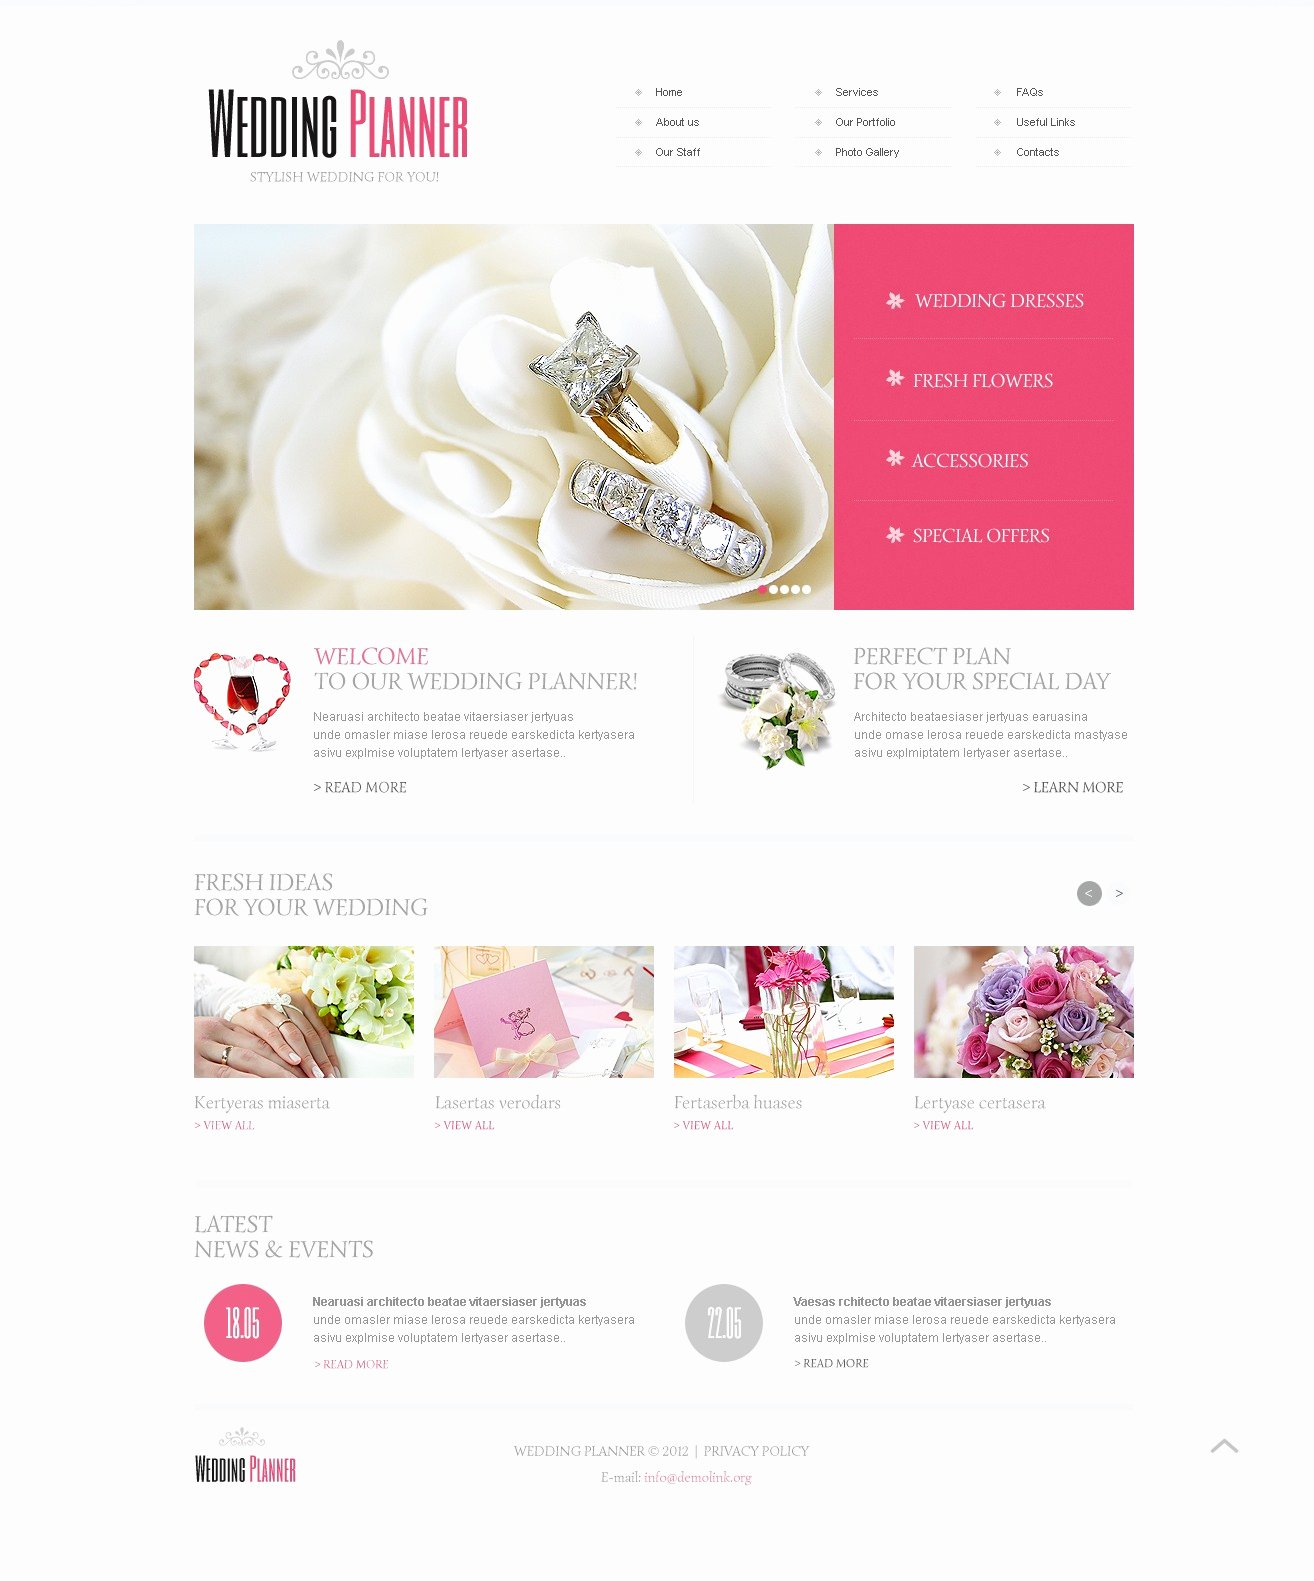 Event Planner Website Template Awesome Wedding Planner Website Template